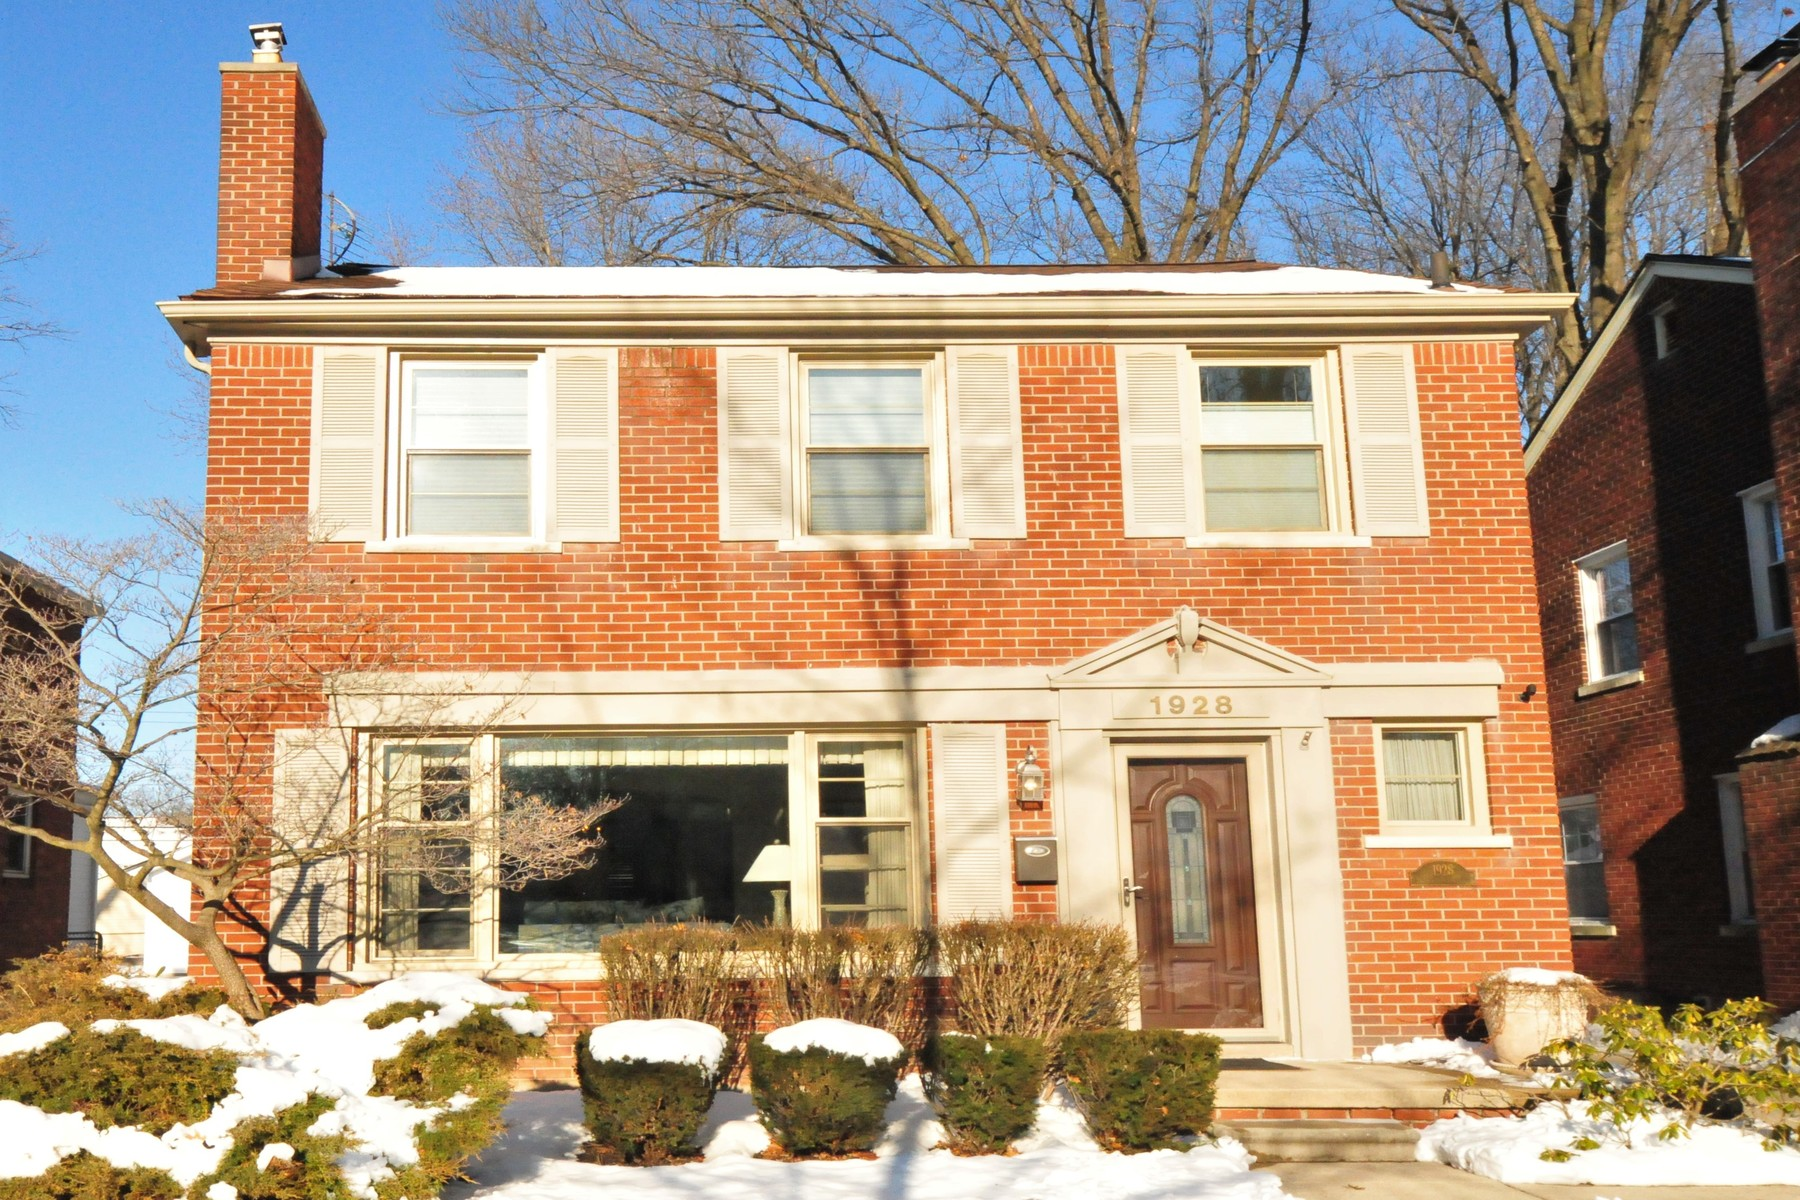 Single Family Homes for Sale at Grosse Pointe Woods 1928 Littlestone Grosse Pointe Woods, Michigan 48236 United States